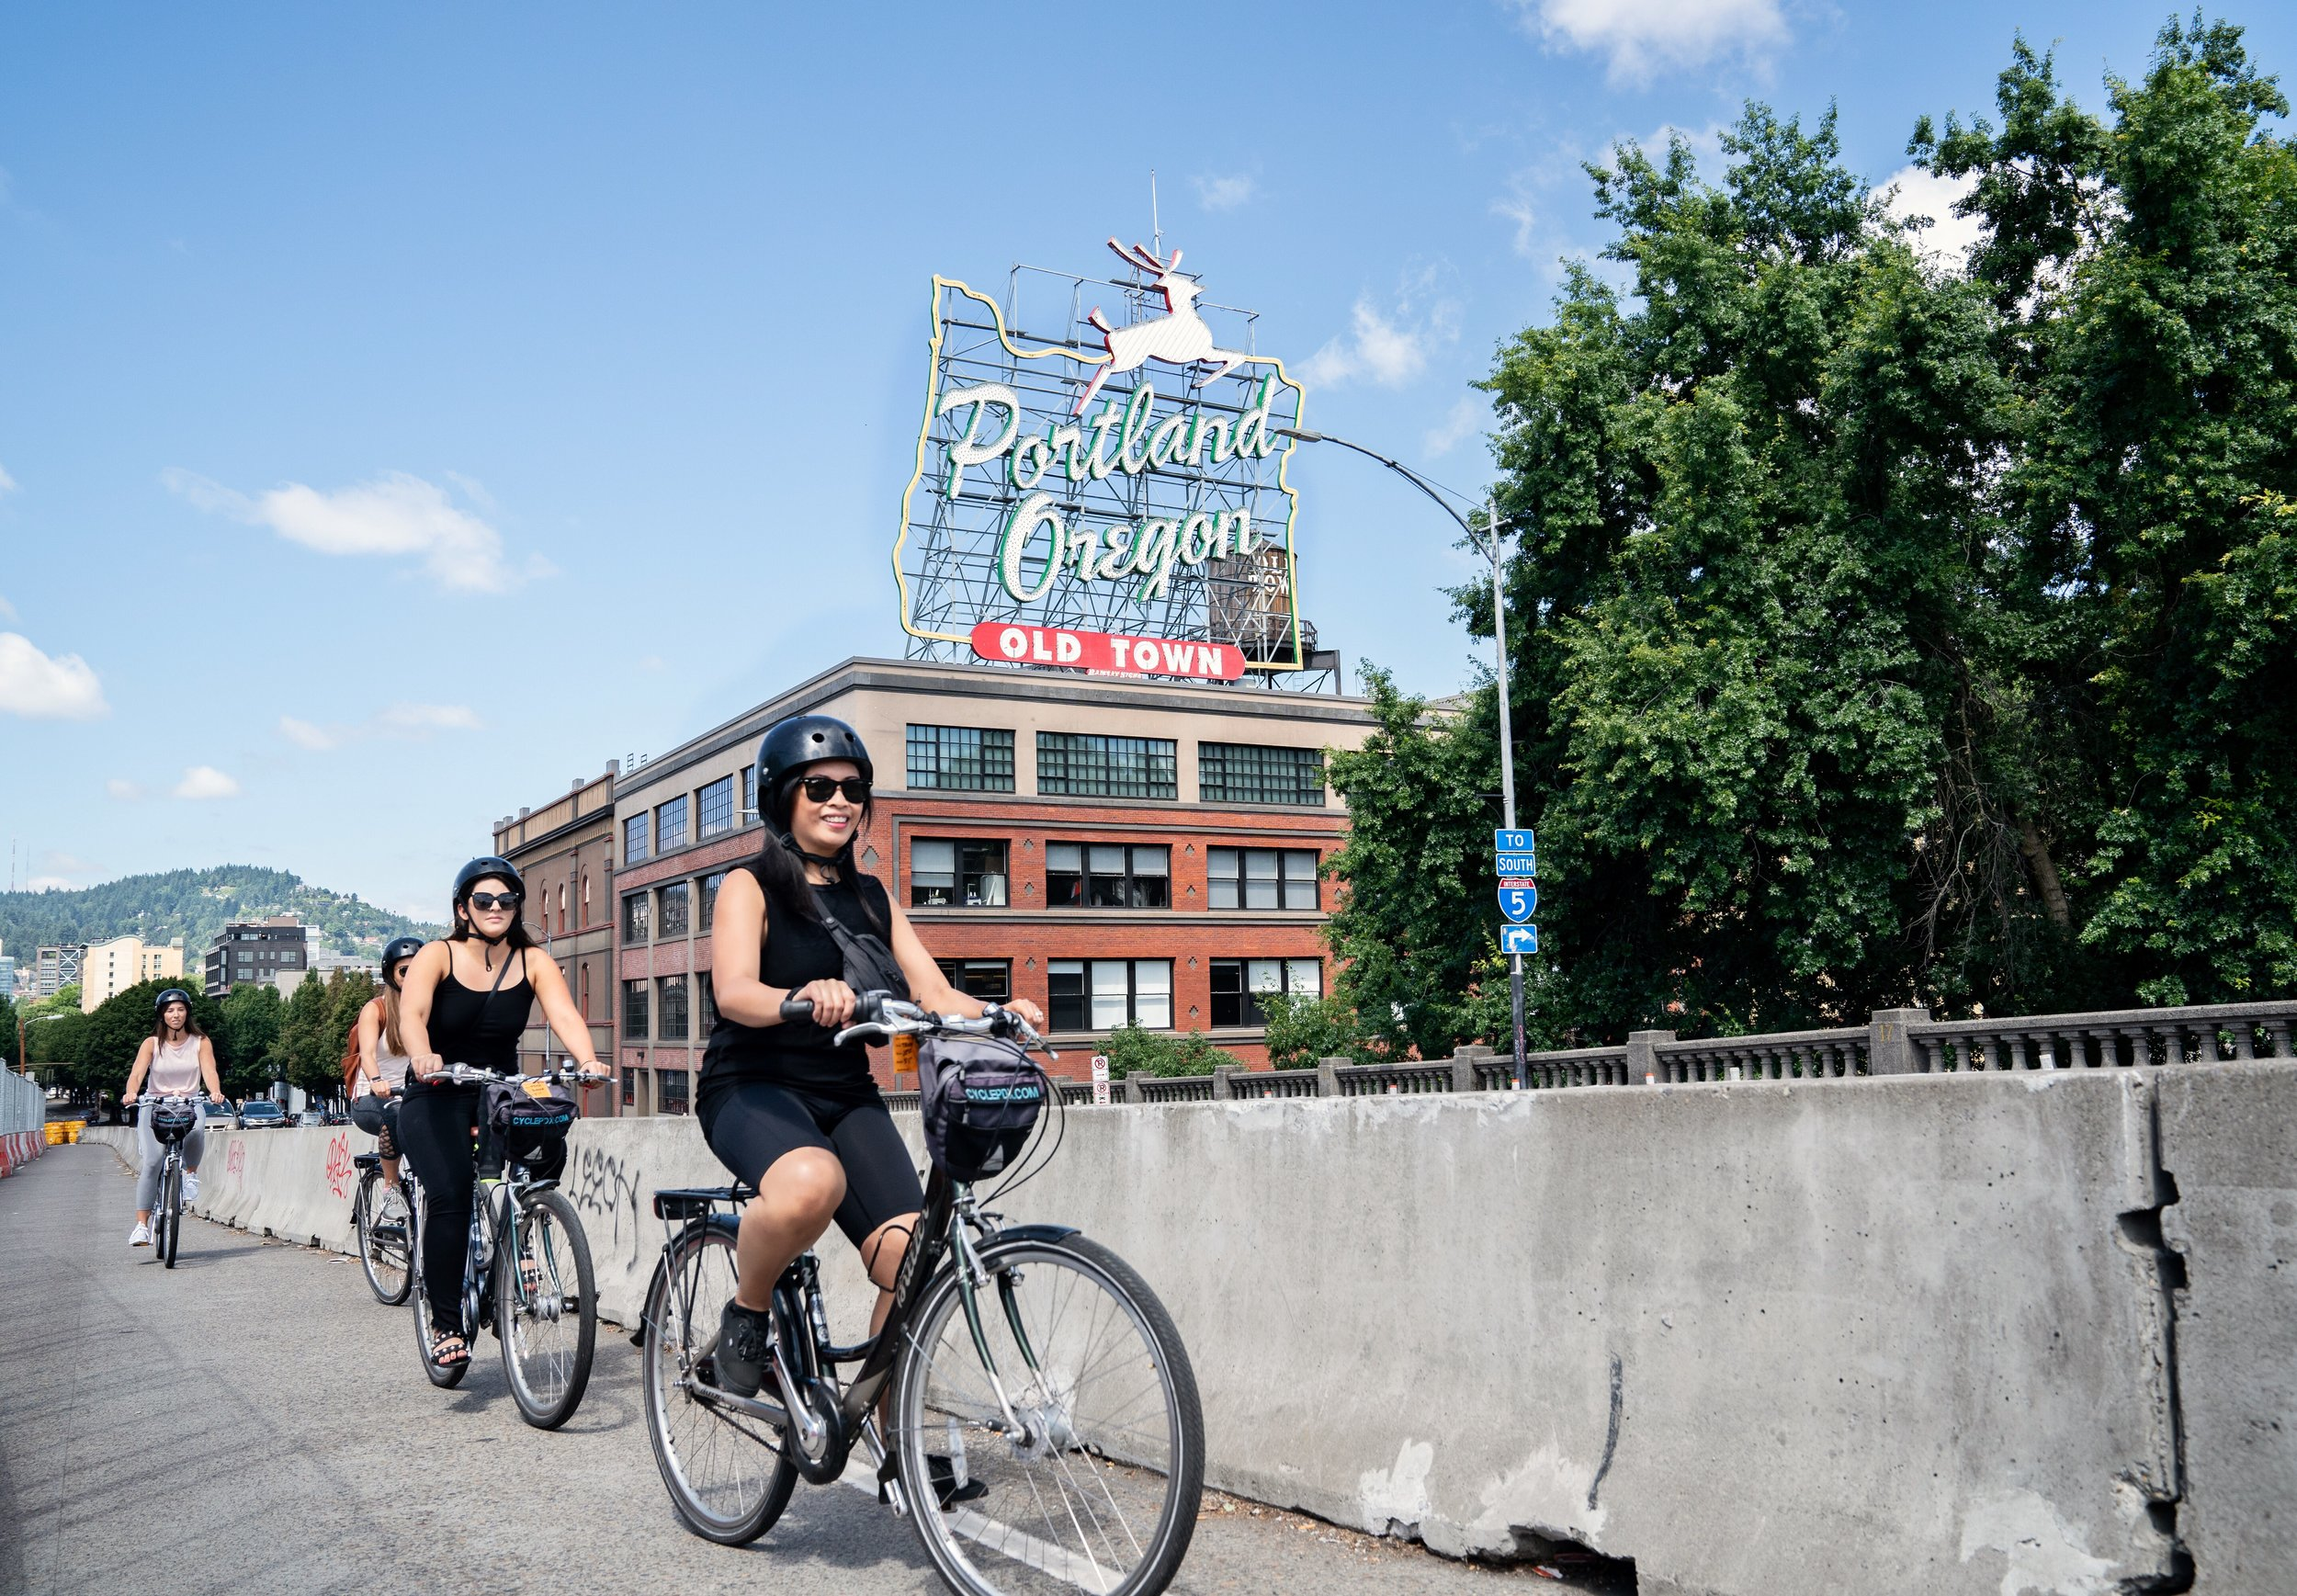 Heading eastside on a foodie bike tour with Cycle PDX!